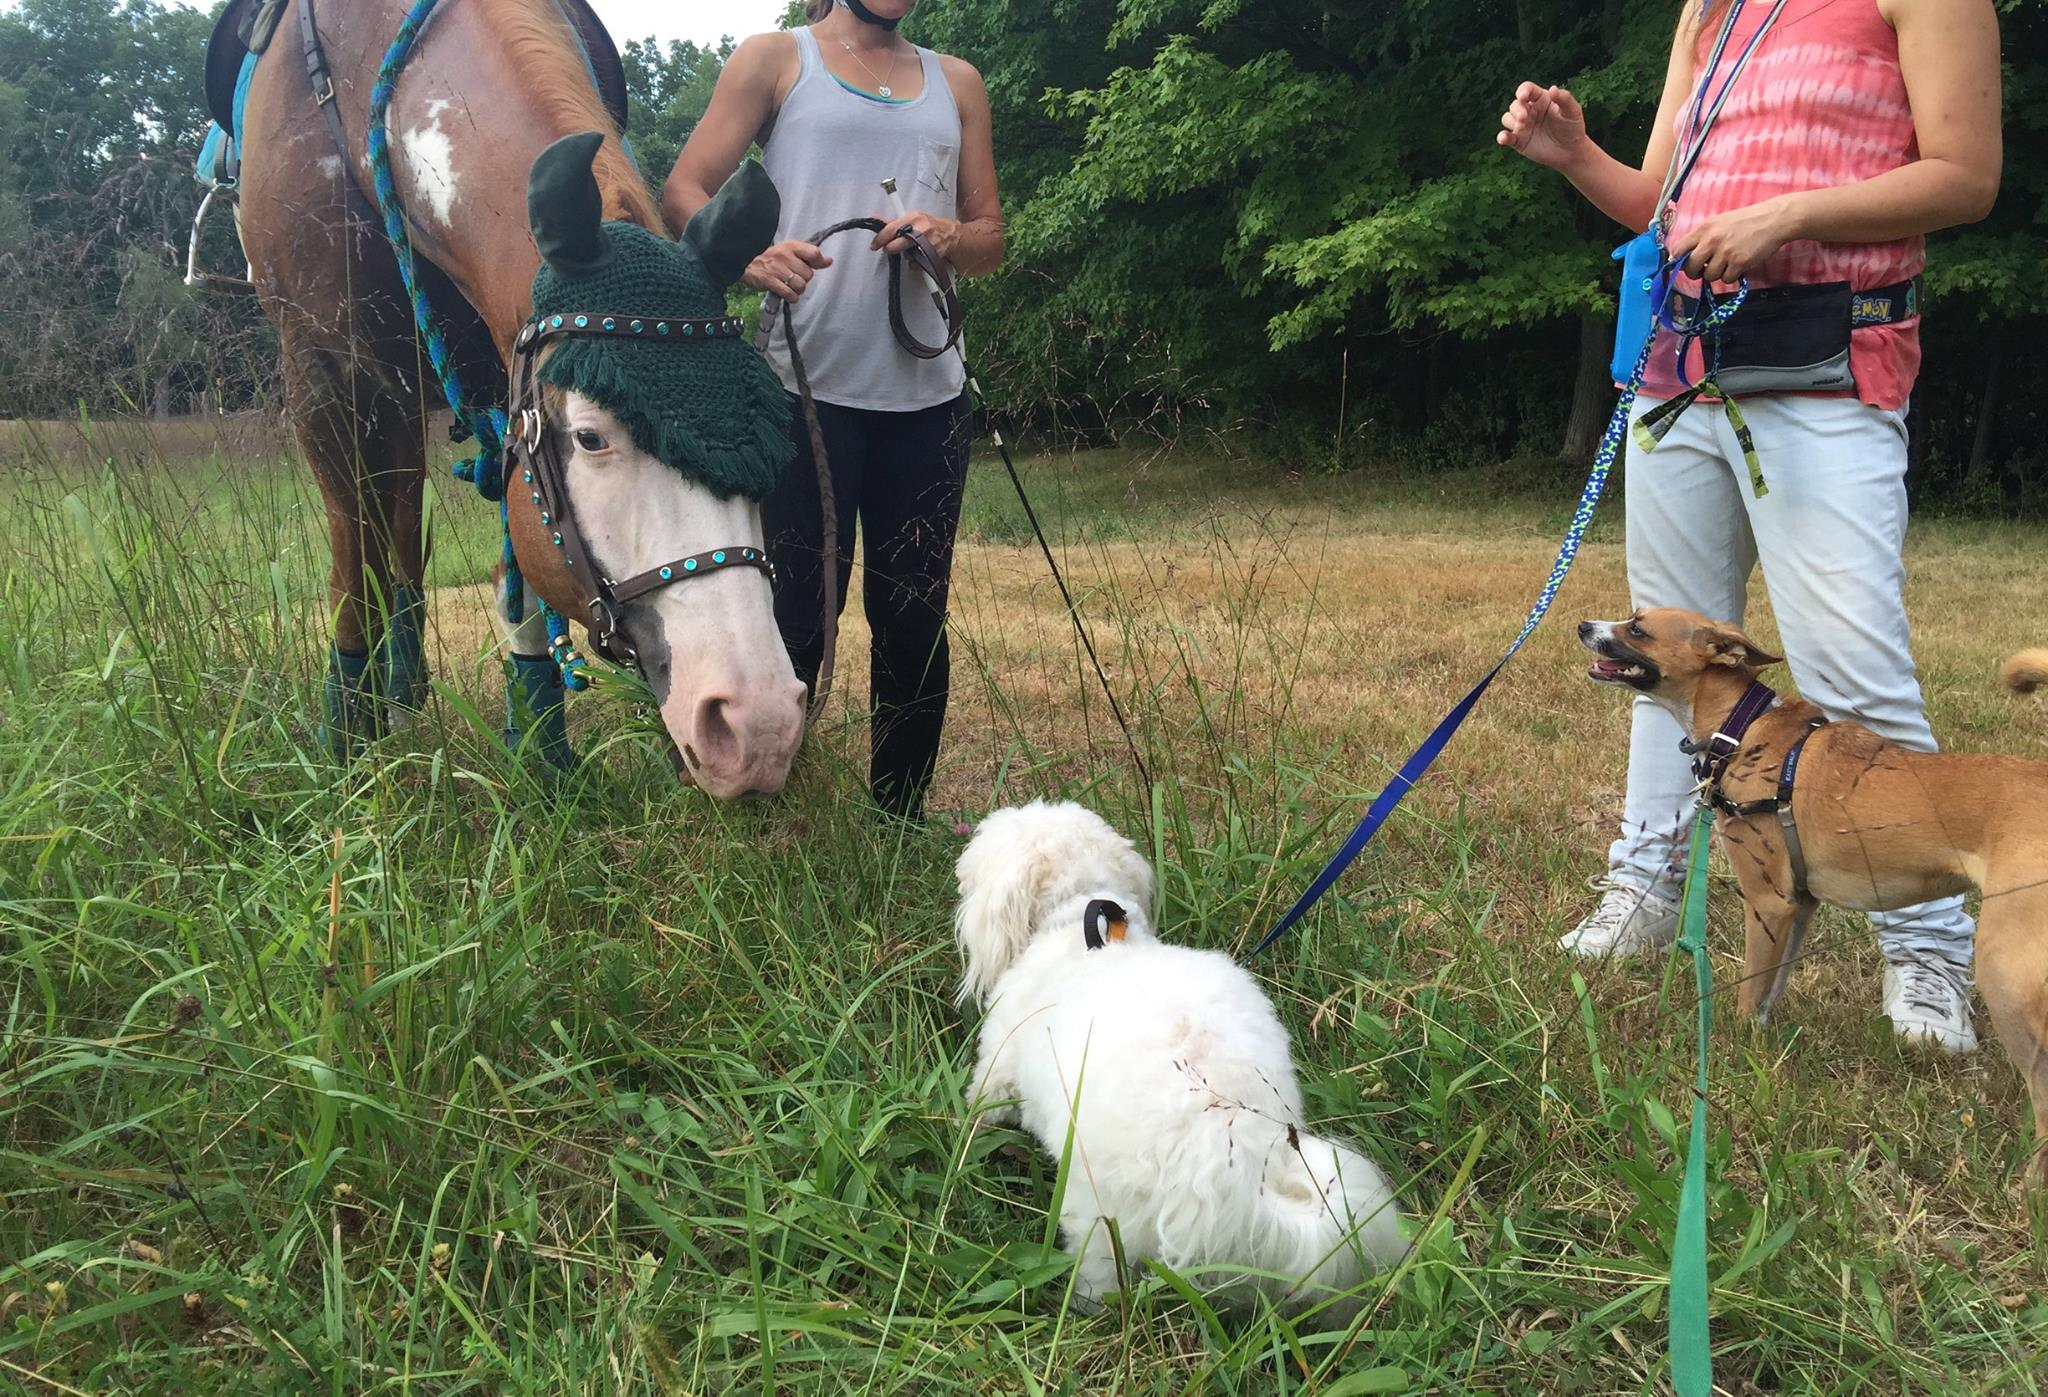 Roger, my trusty steed for 17 years, helps socialize some canine friends, TonTon and Jambo.